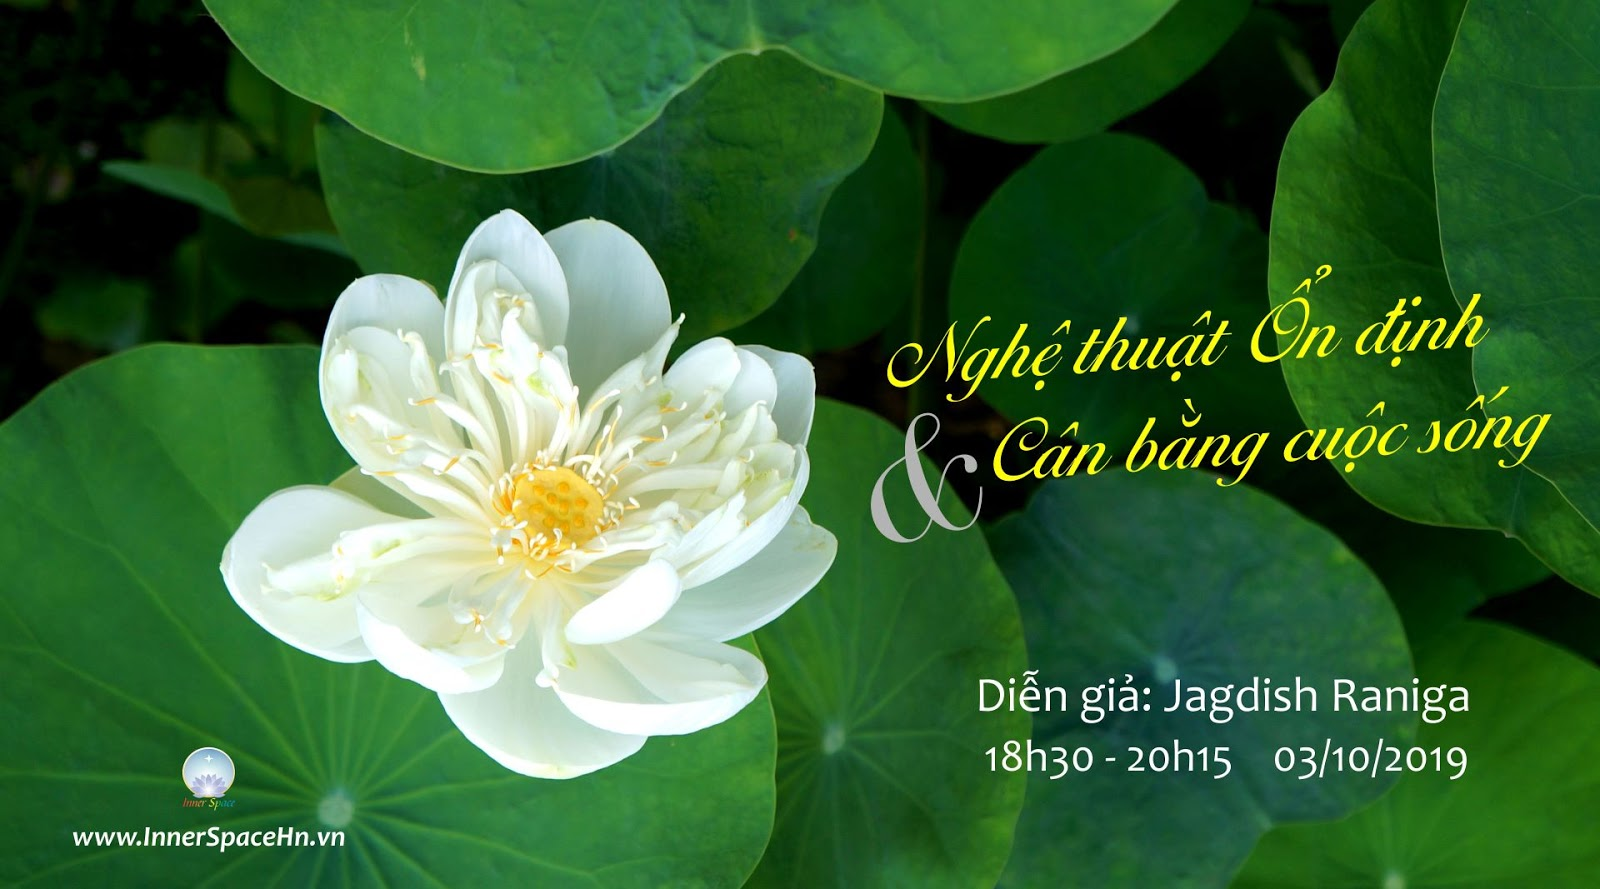 nghe-thuat-on-dinh-va-can-bang-cuoc-song